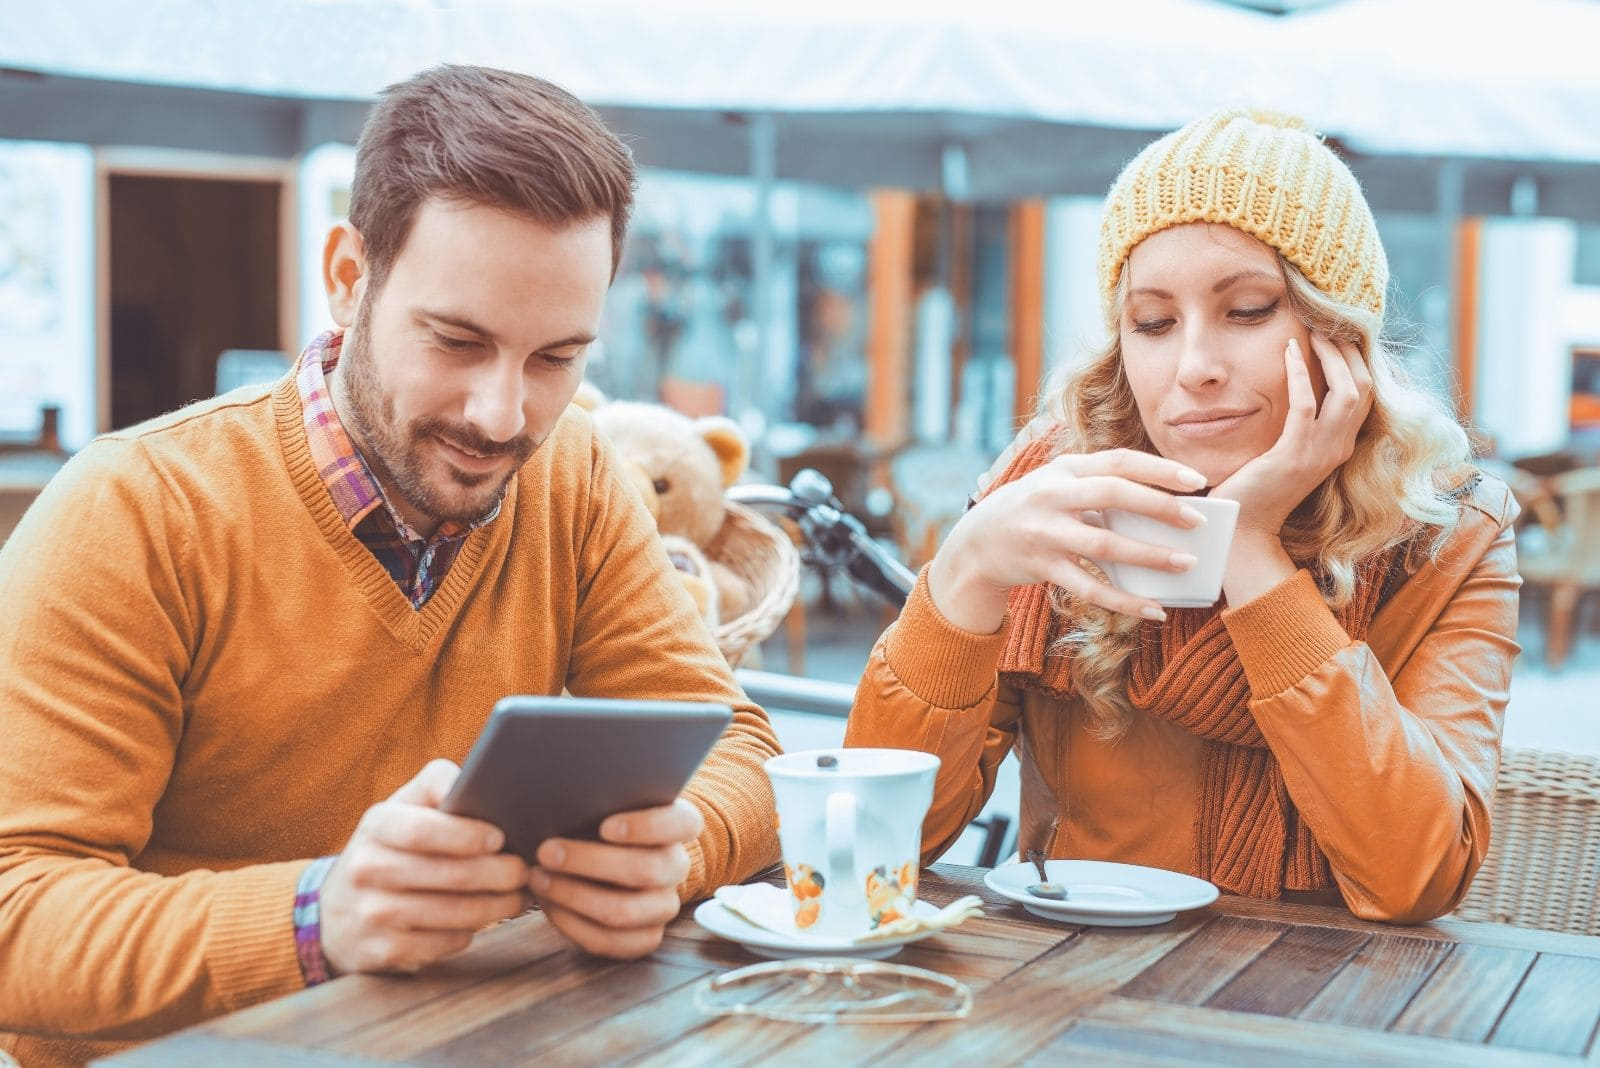 young woman looks suspicious while boyfriend is texting on smartphone while having coffee in an outdoor cafe